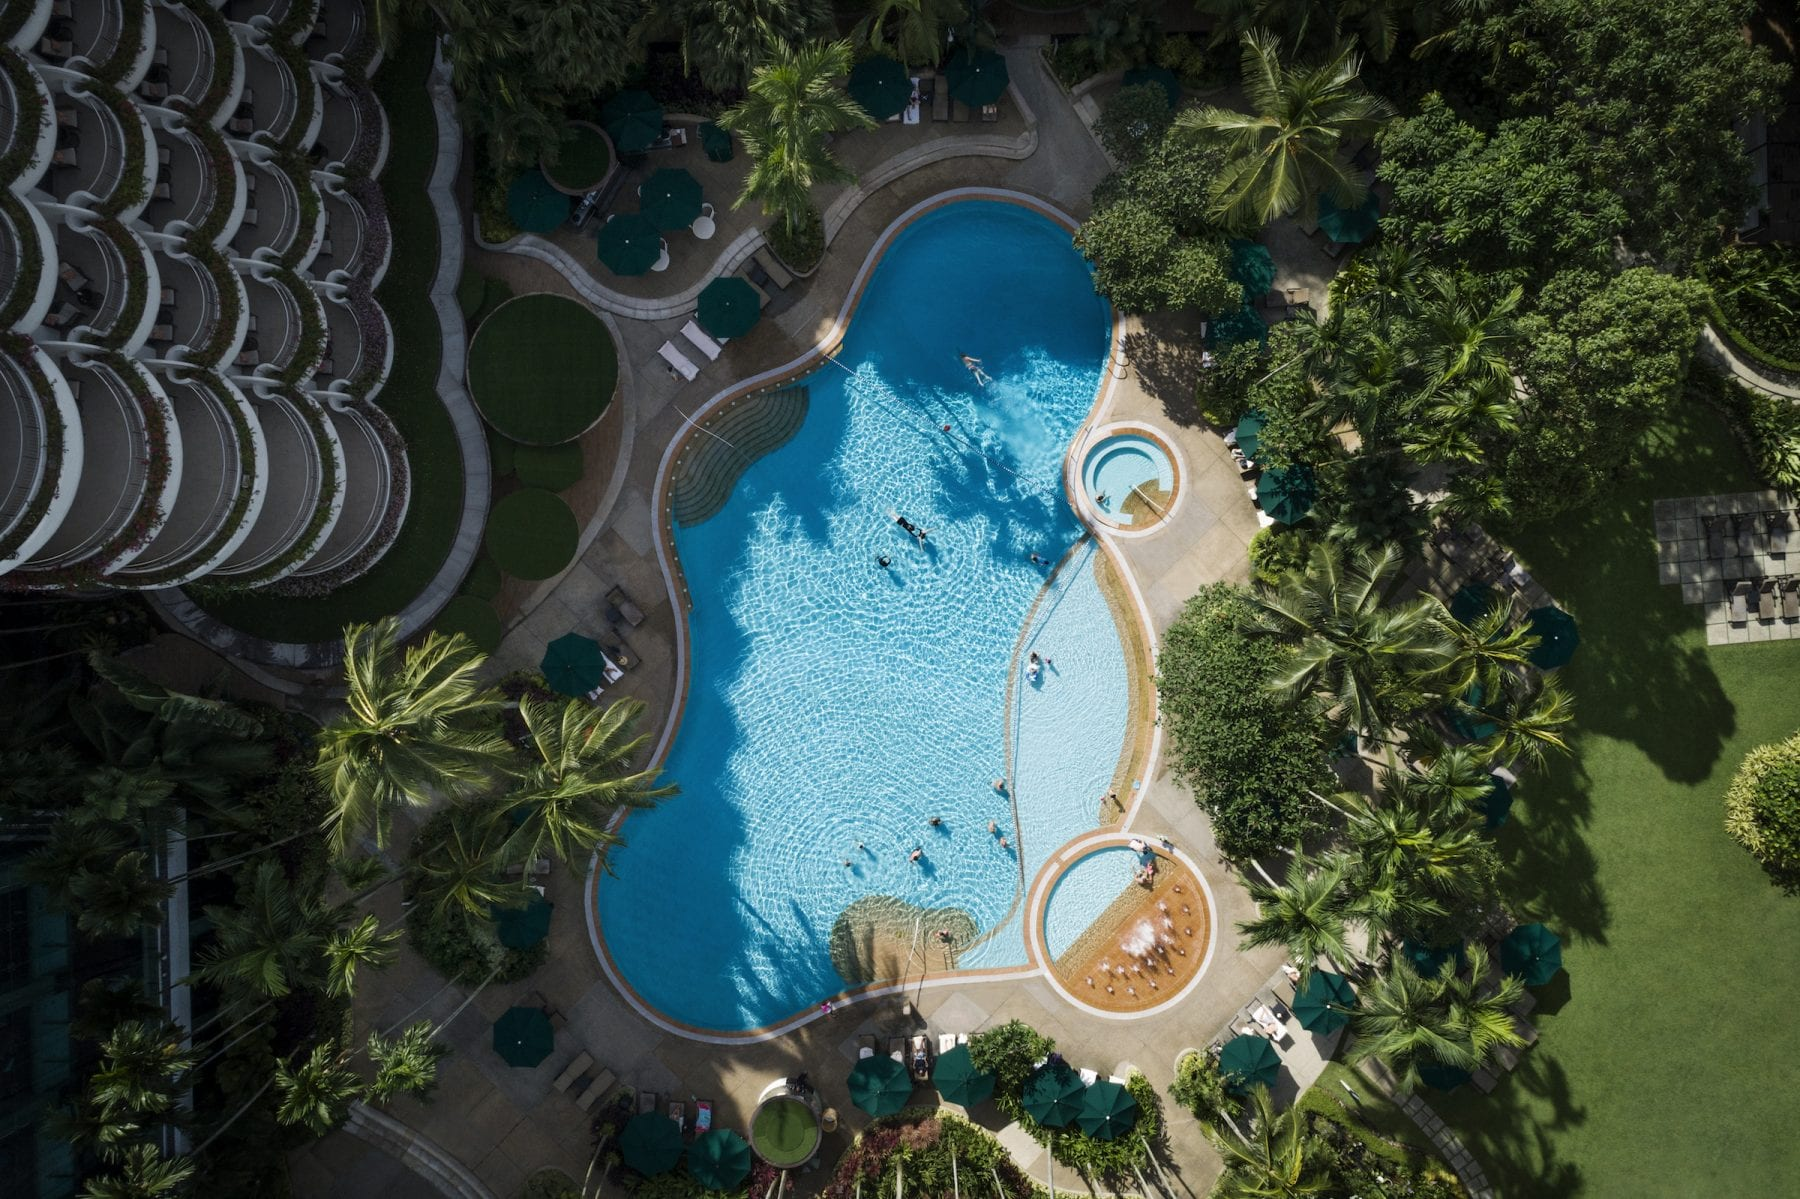 https://uluxeimages.uniqluxe.com/2020/07/shangrila-singapore-swimming-pool-top-view-1-scaled.jpg